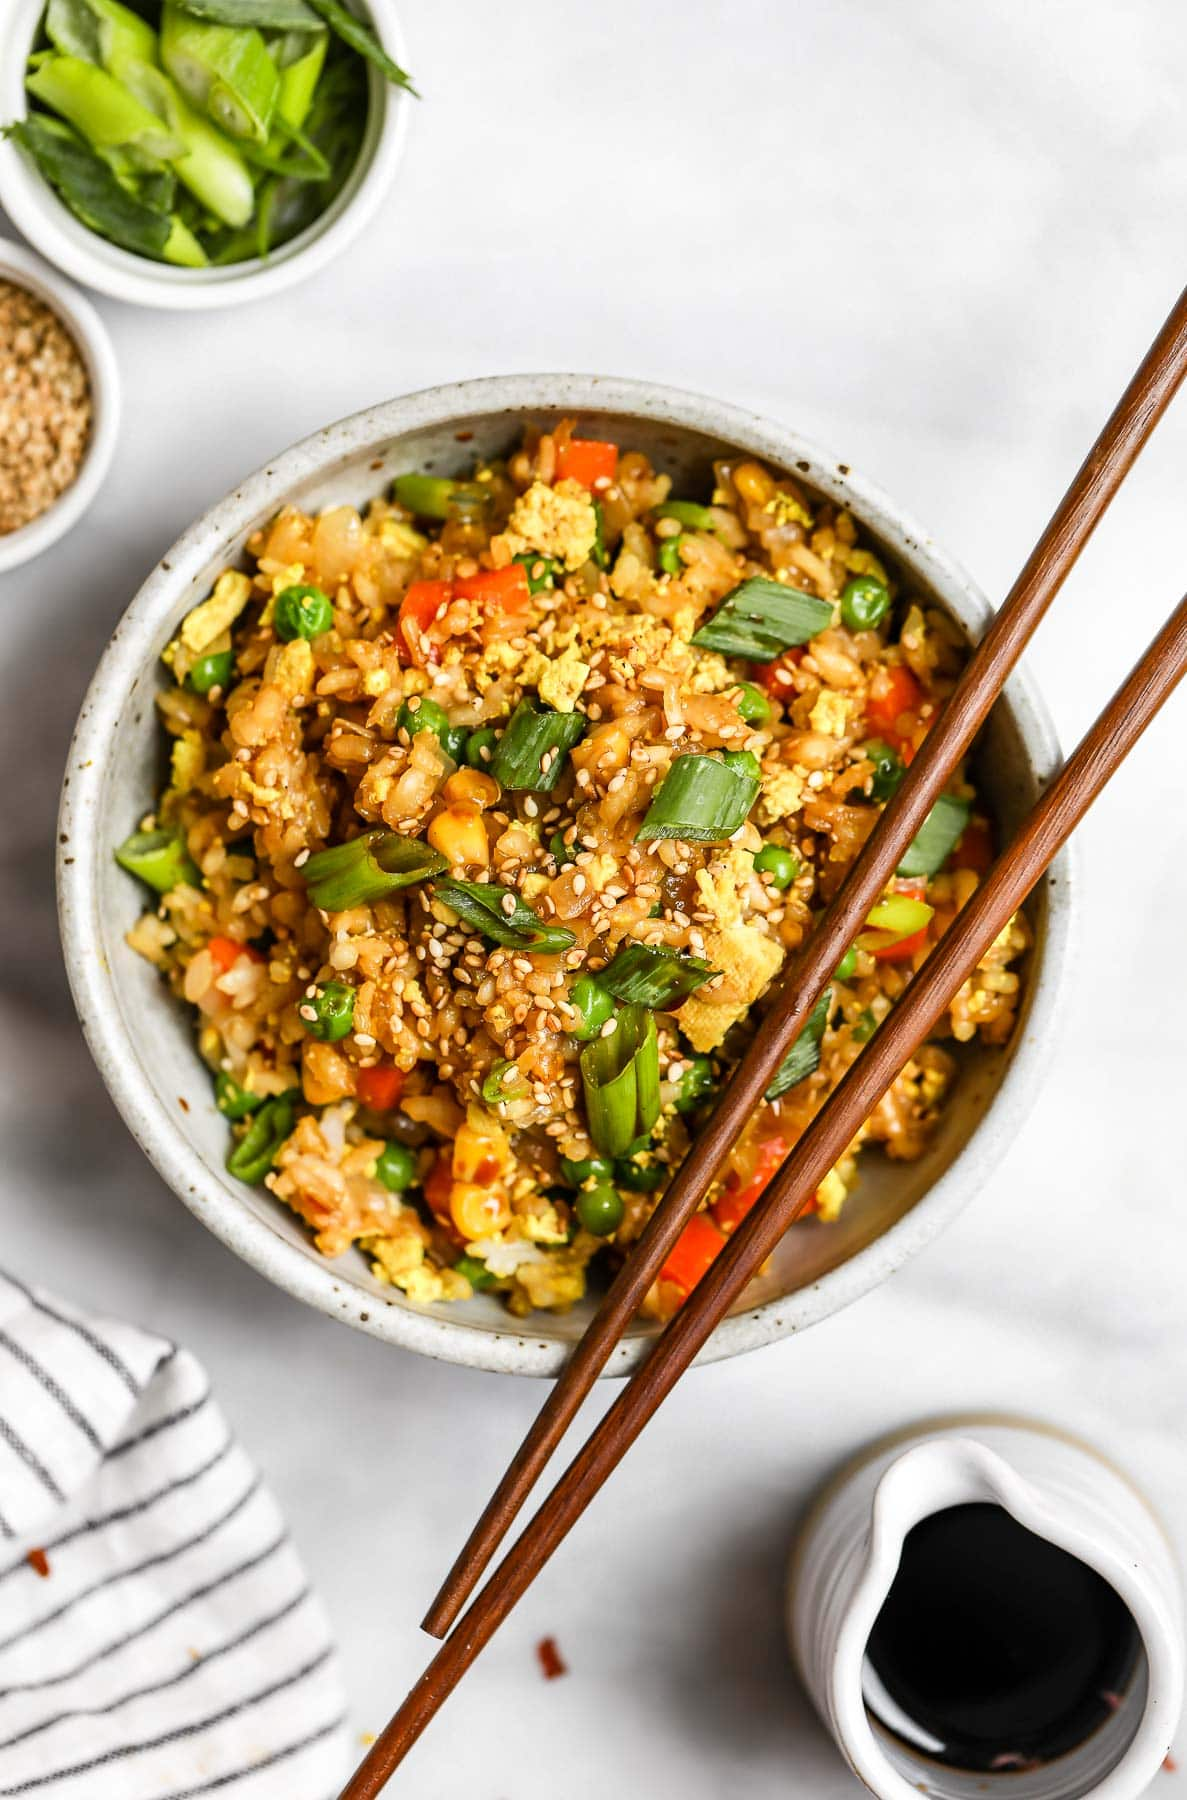 One bowl of vegan fried rive with chopsticks on the top.